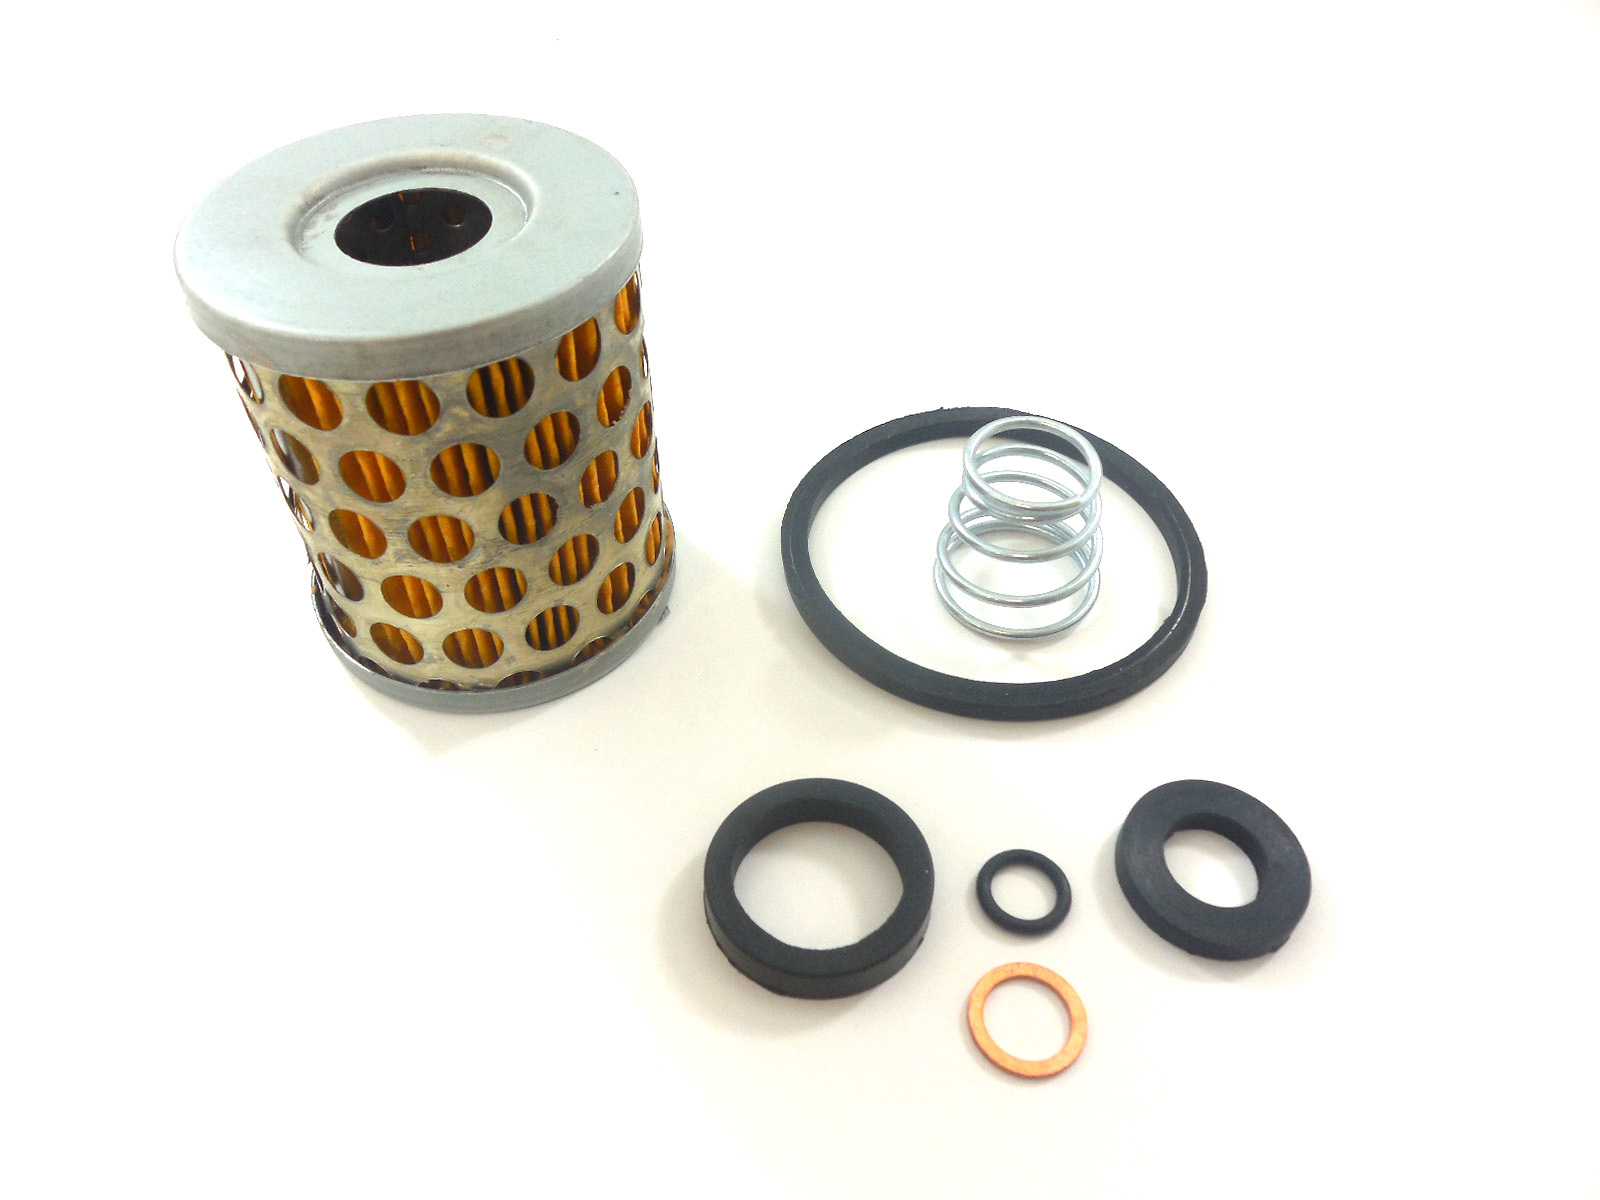 Racing Power Company R4298 Fuel Filter Element, 10 Micron, Paper Element, O-Rings, RPC Small Canister Filters, Kit